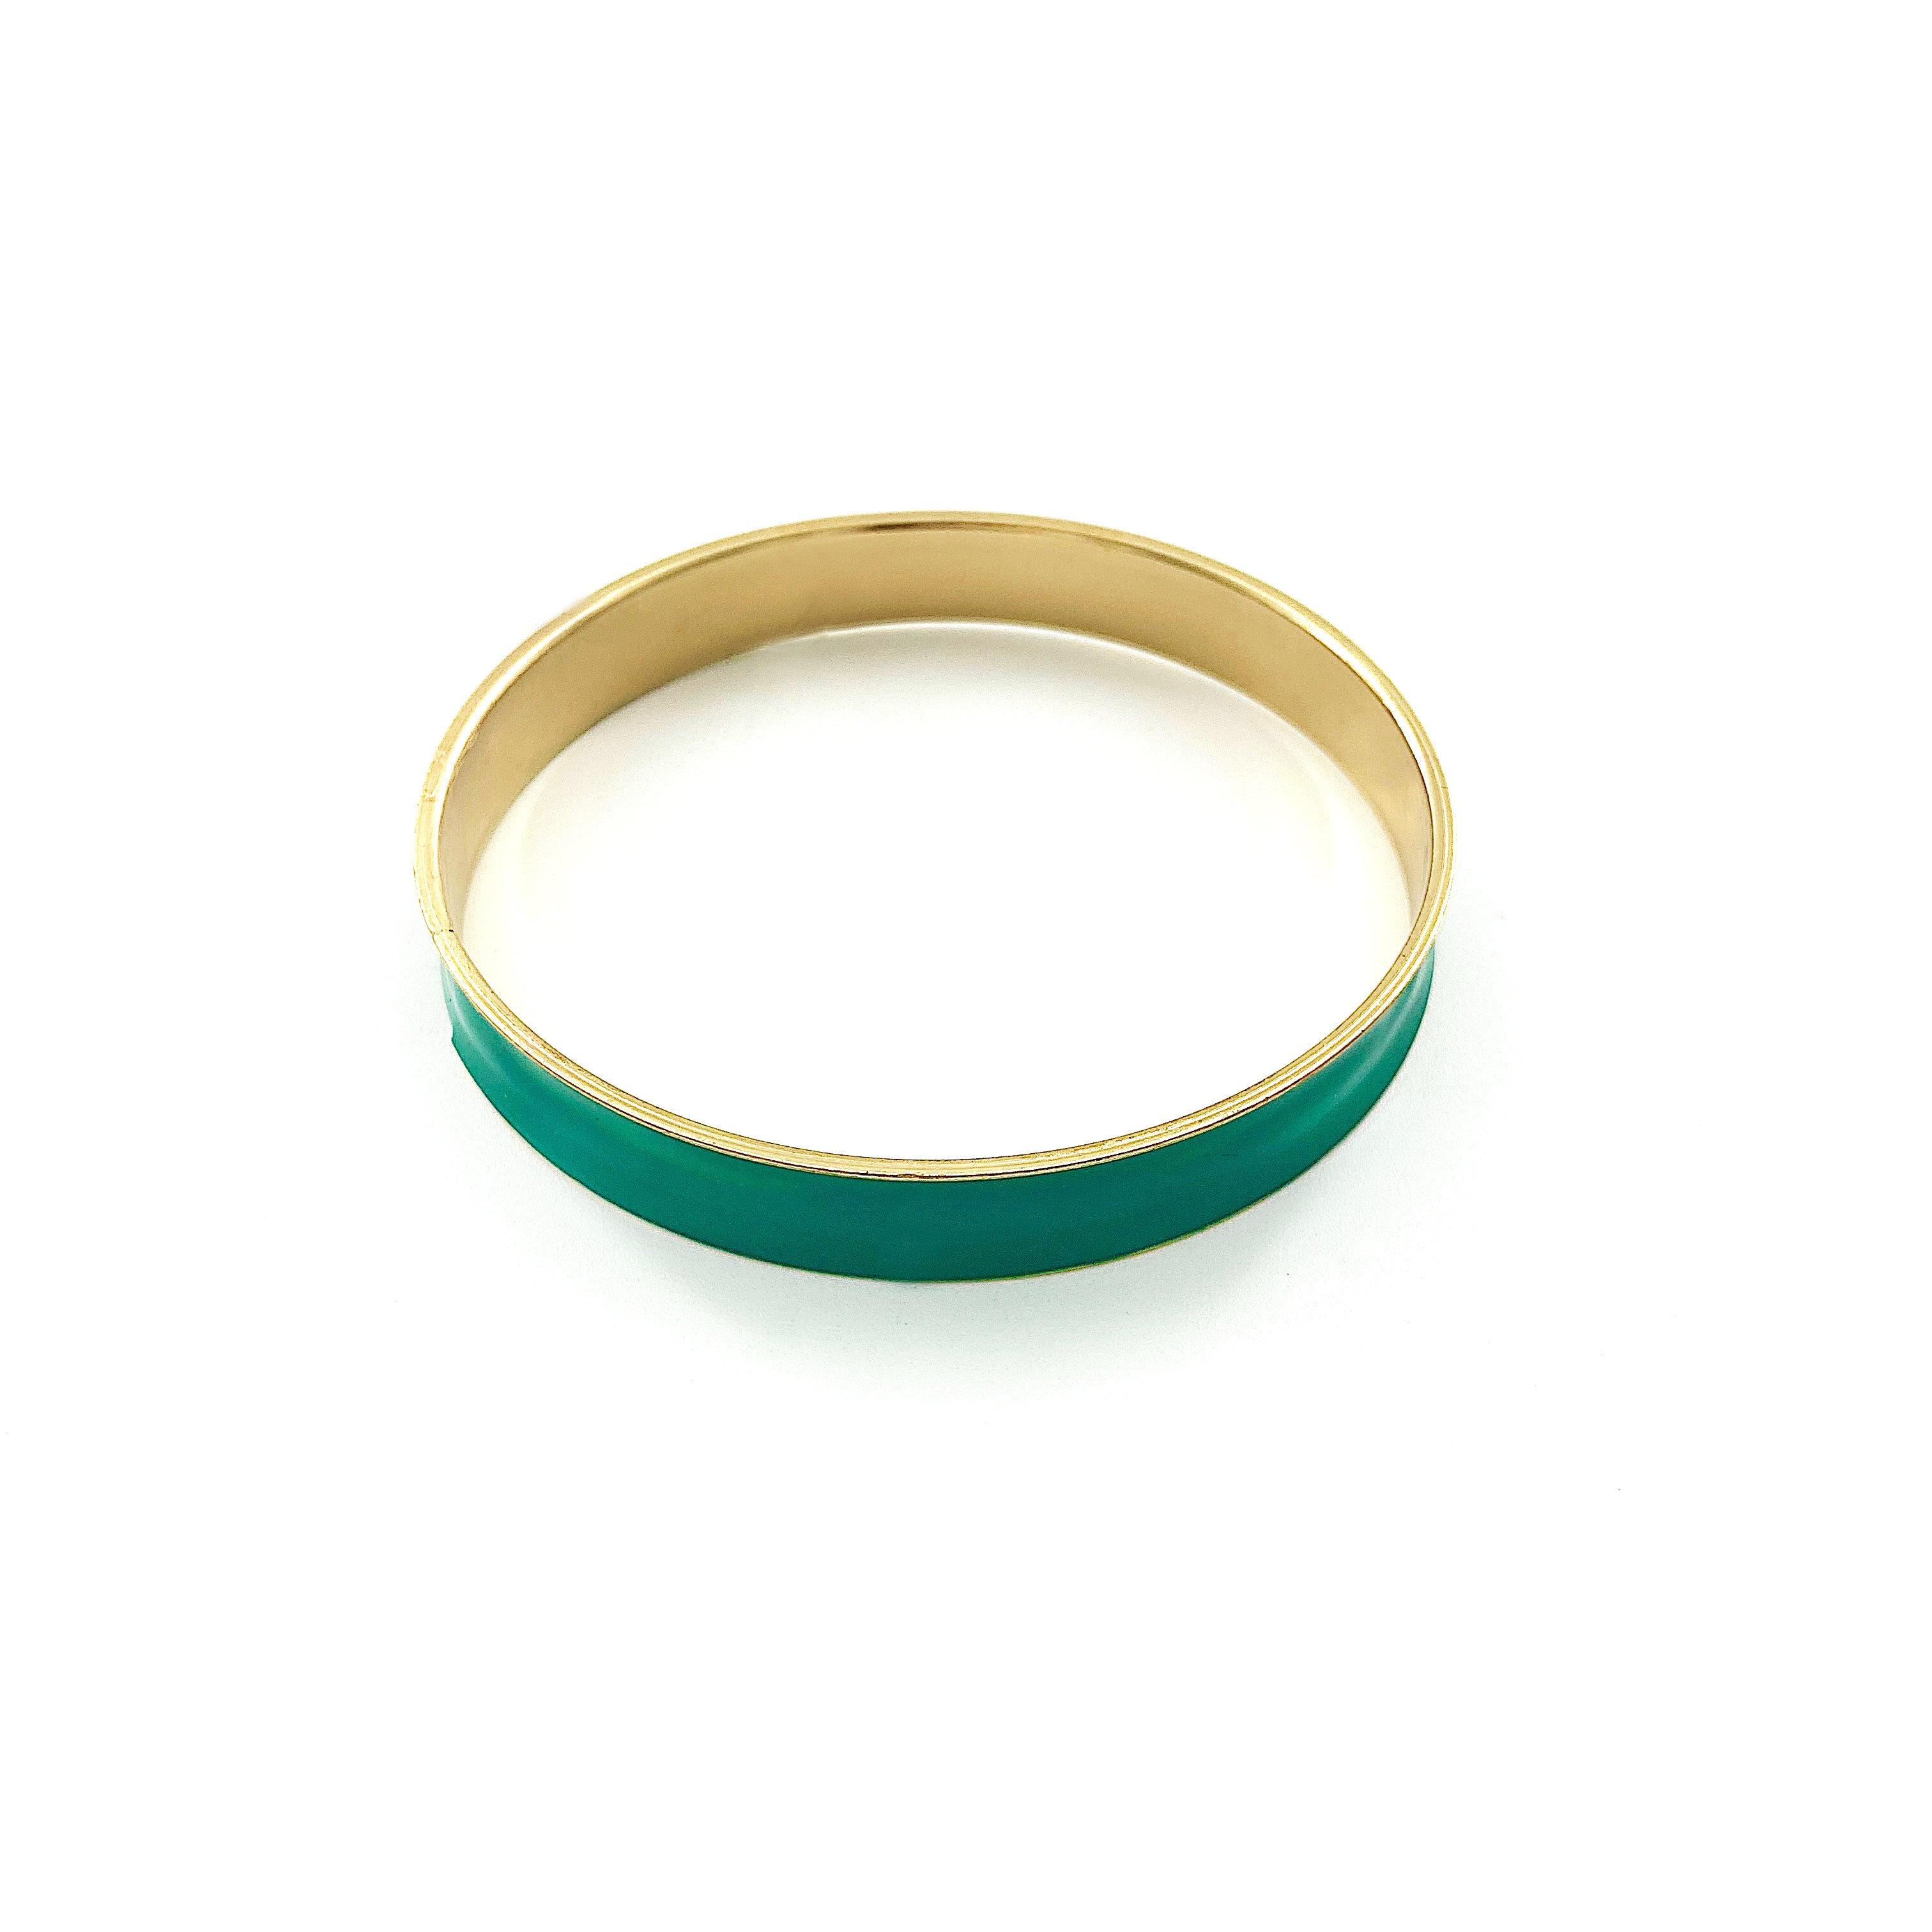 Green and gold bangle with enamel finish